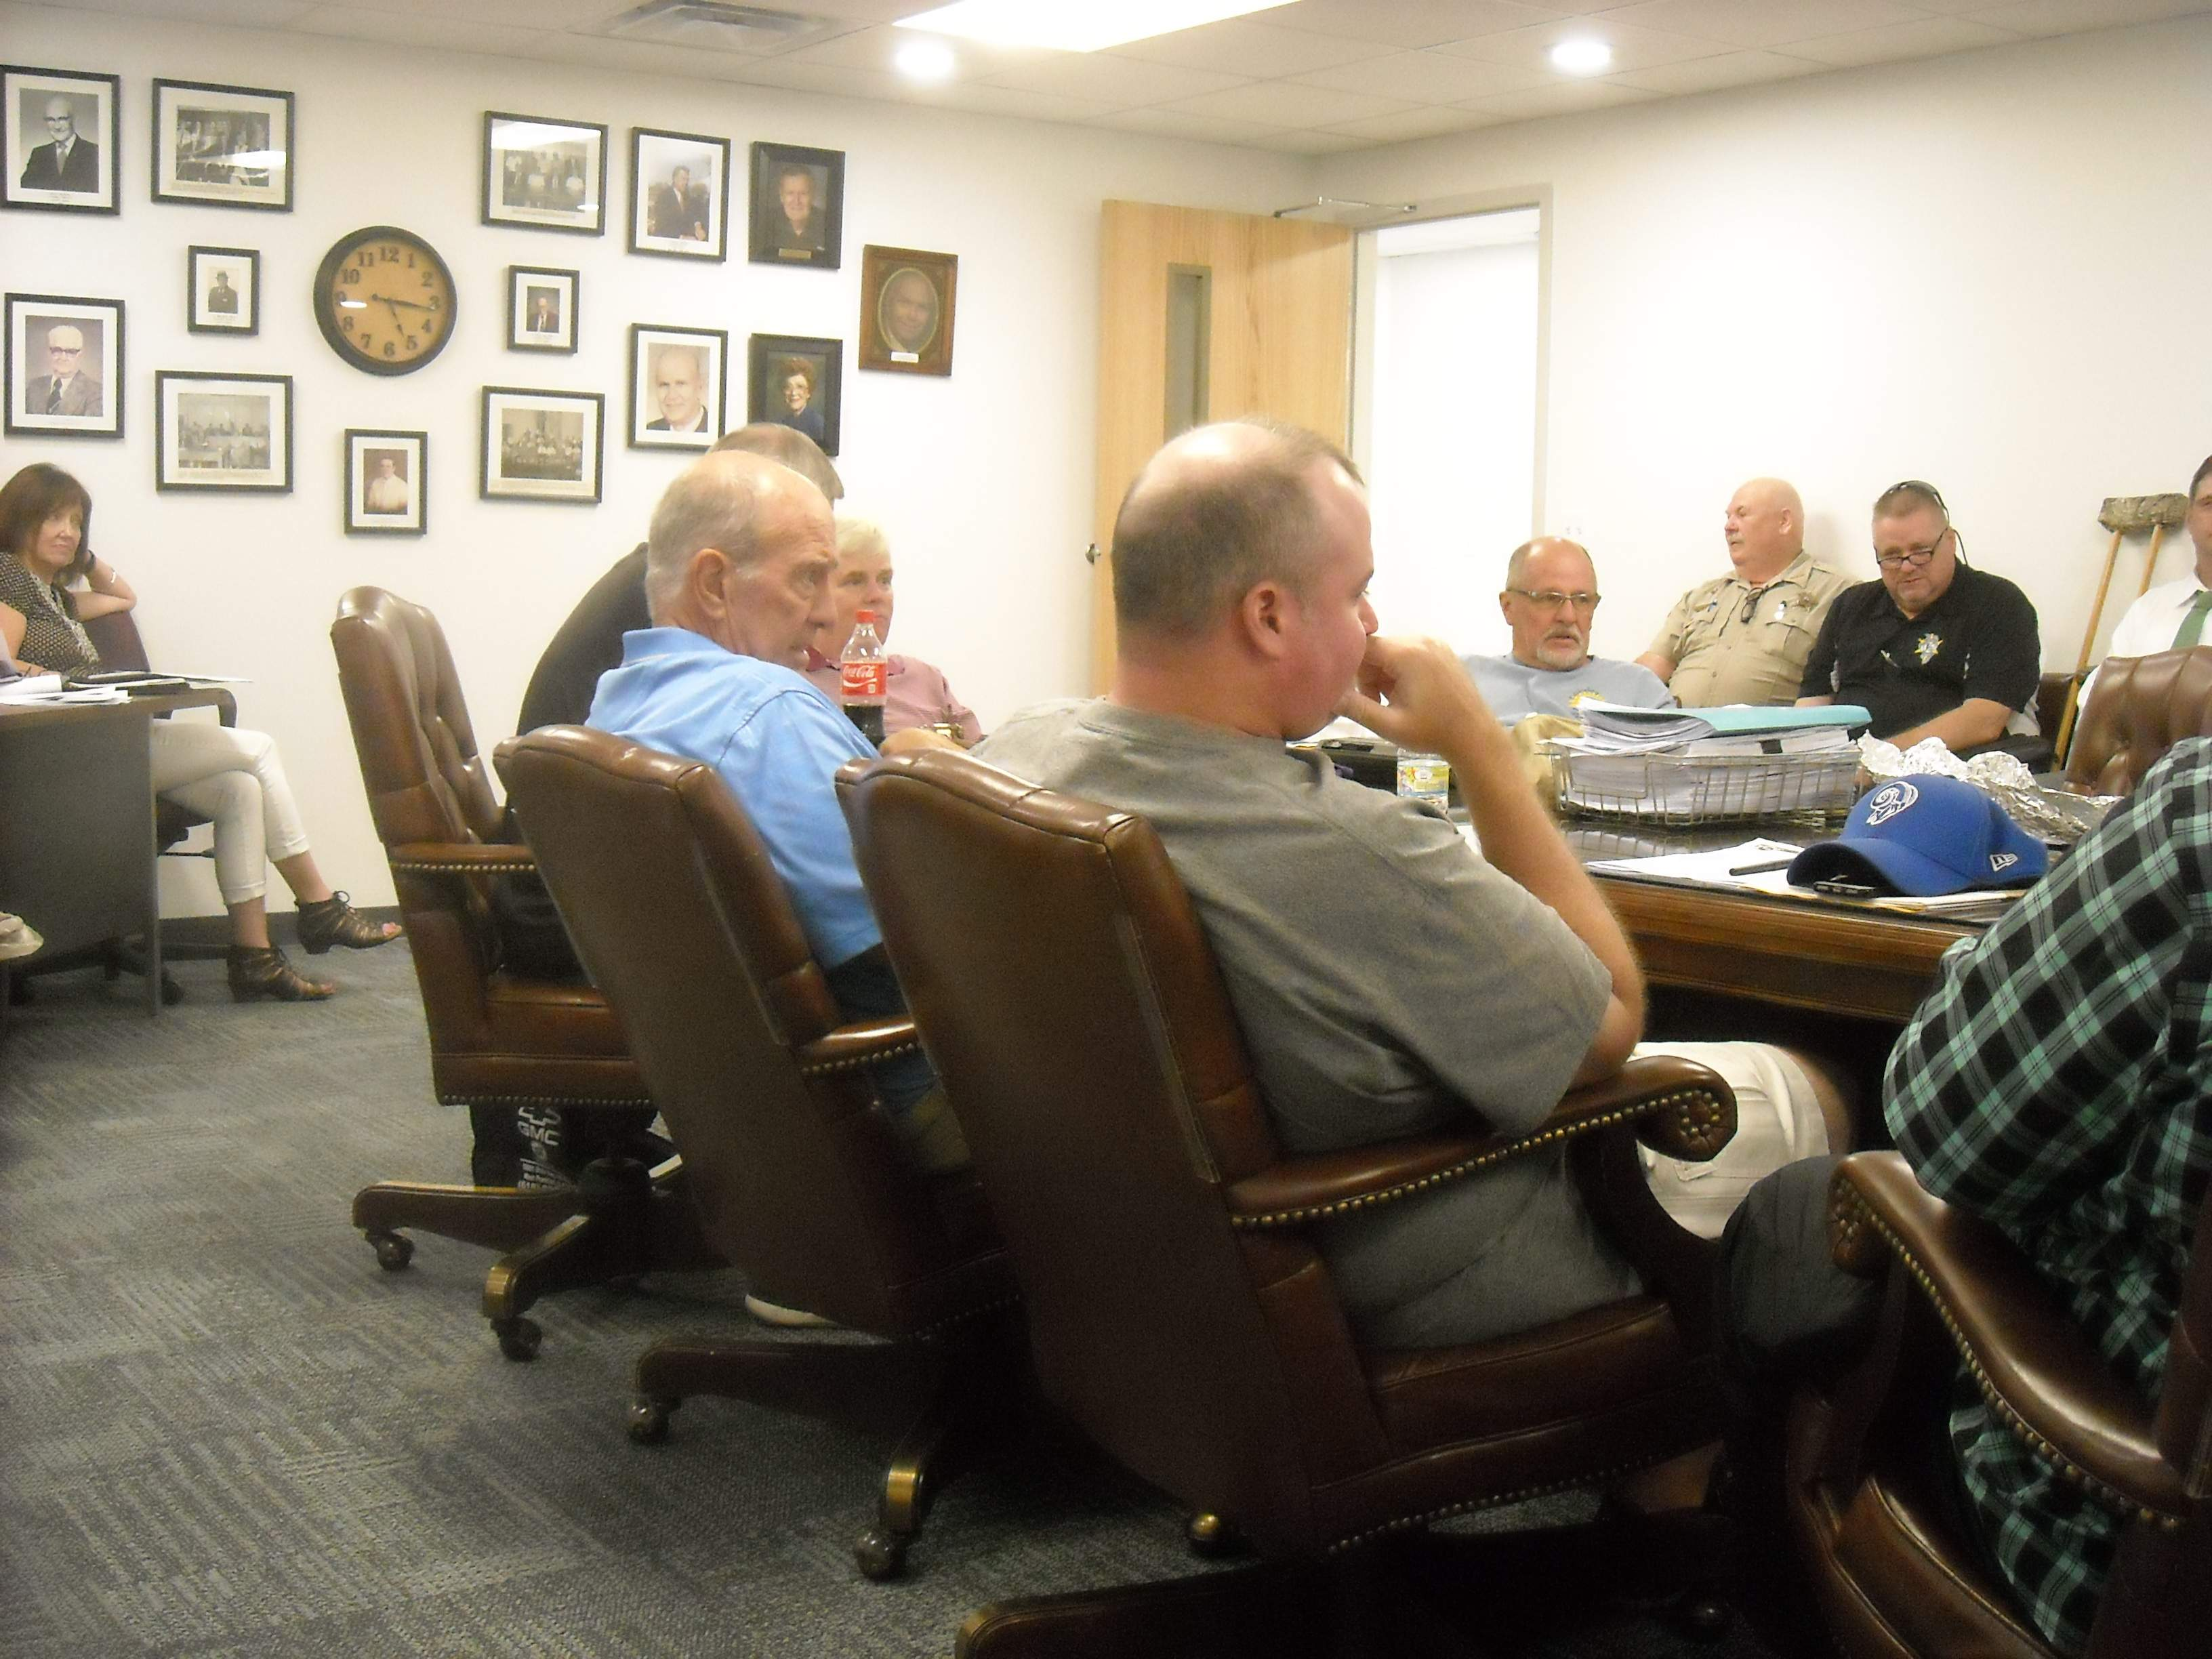 Franklin County Board members met in committee meetings Monday at the Campbell Building. Clockwise are Neil Hargis, Tom Vaughn, Keith Ward, Randall Crocker and Danny Melvin. In back are Sheriff Don Jones and Coroner Marty Leffler.